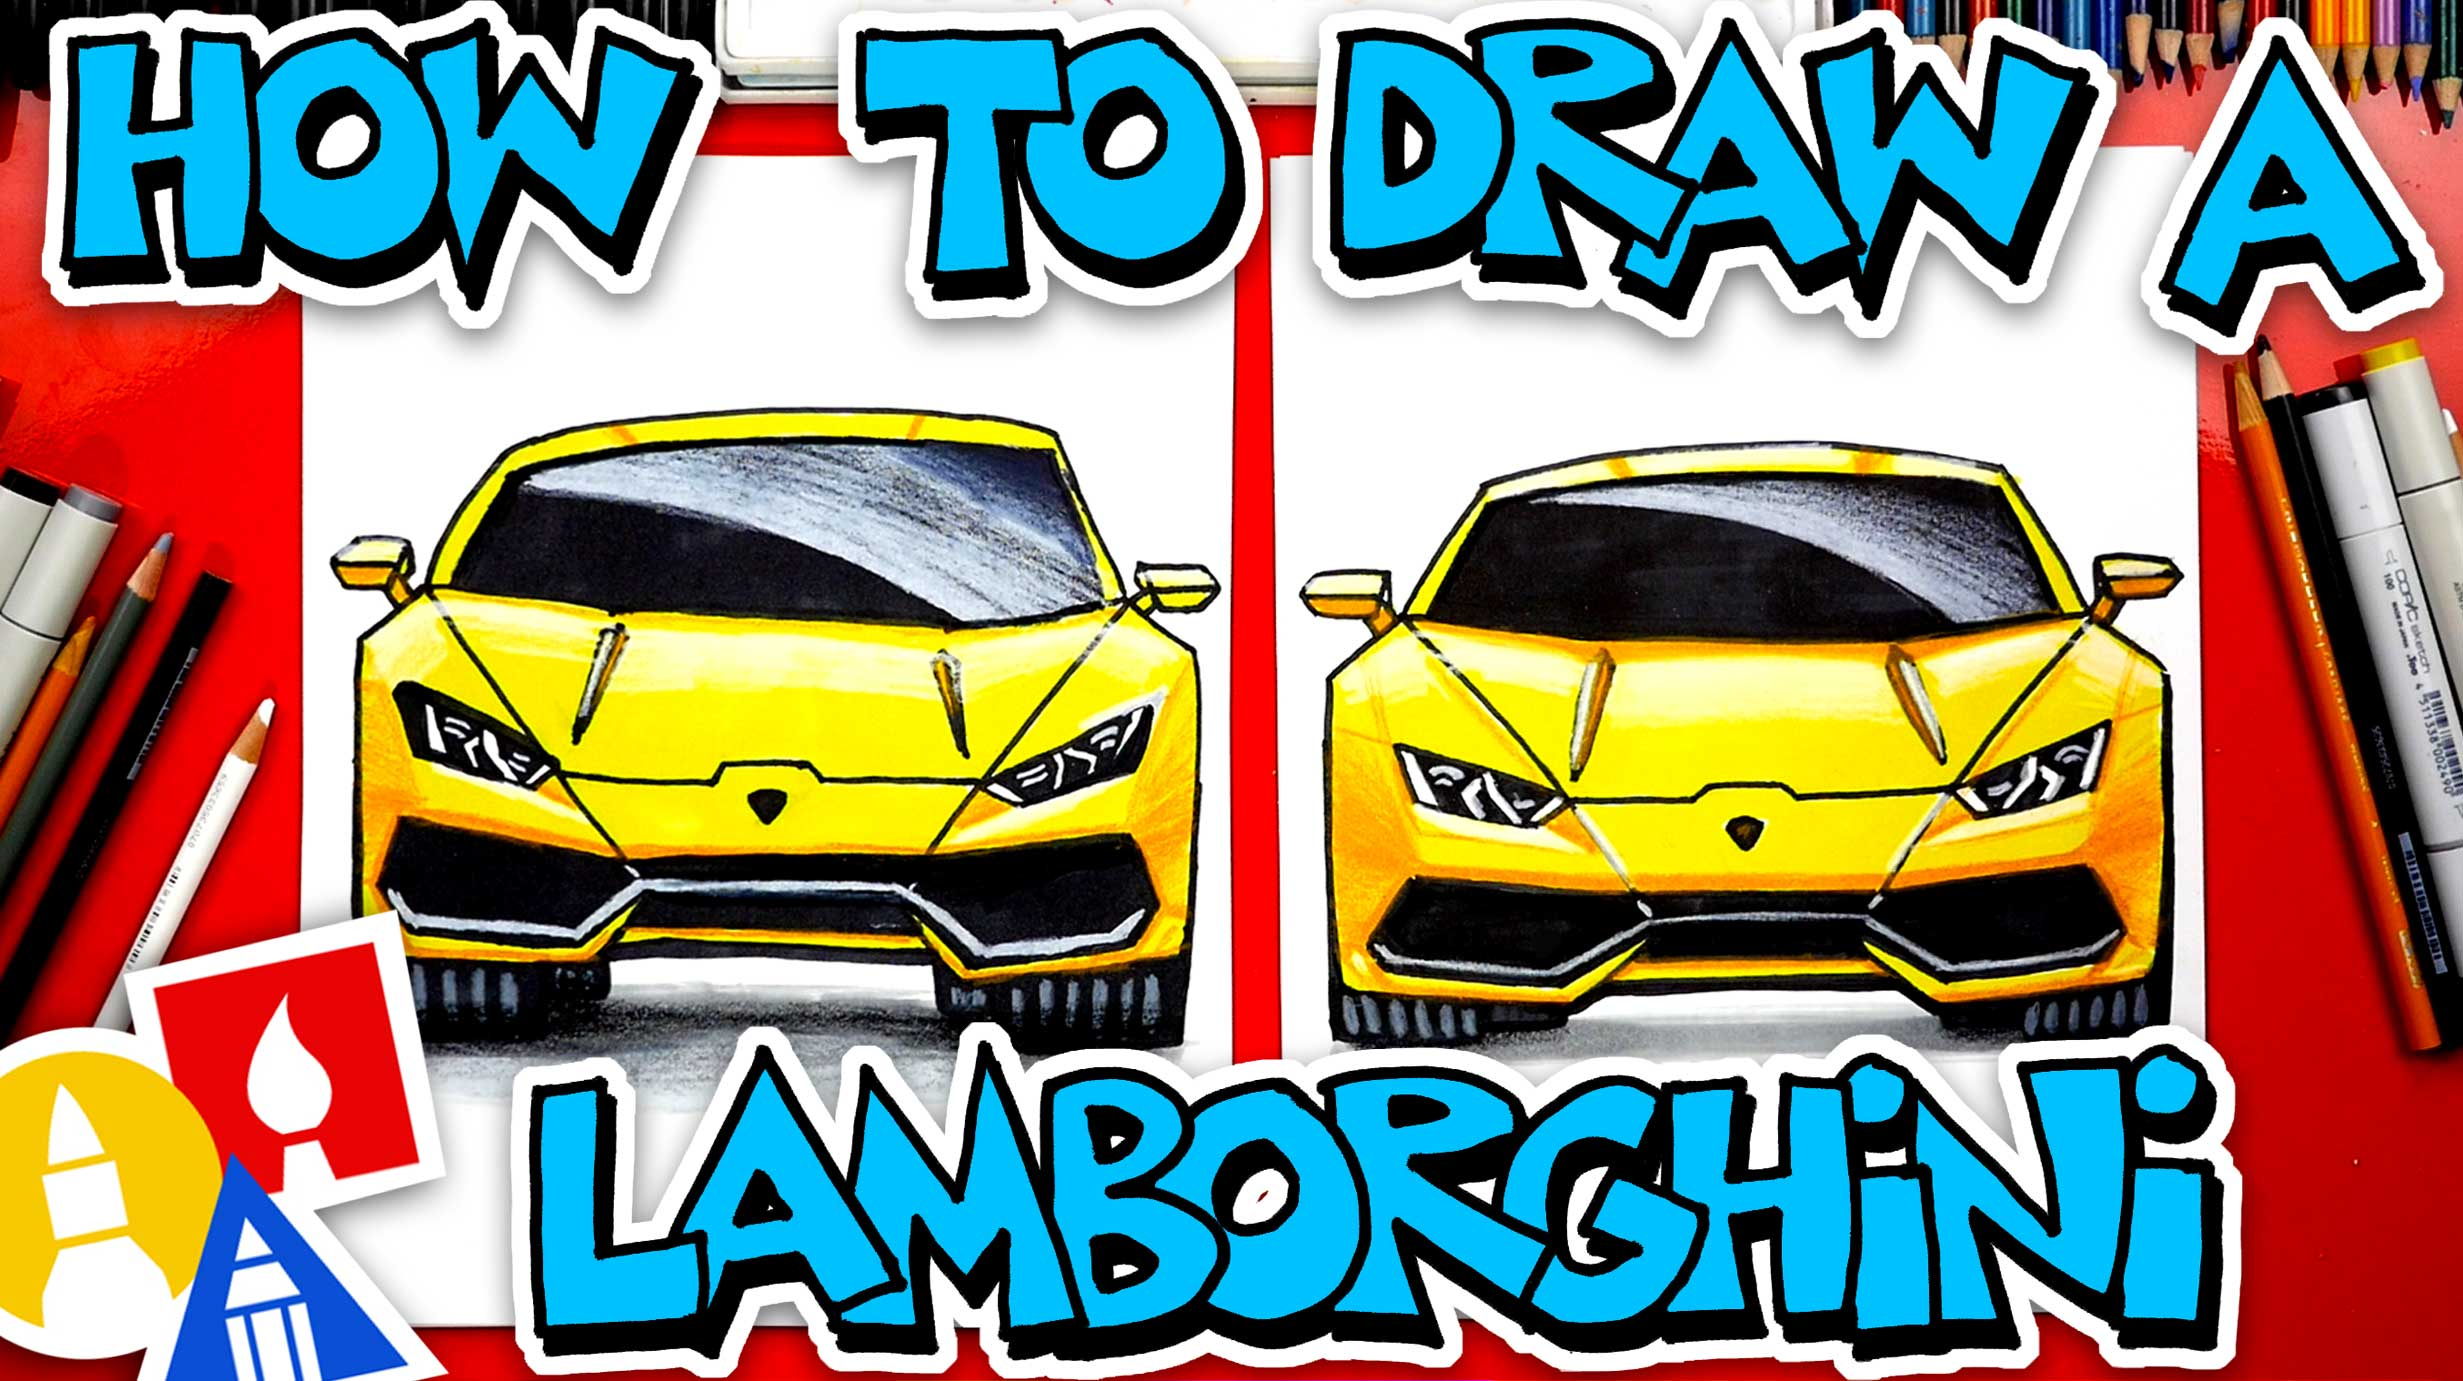 How To Draw A Lamborghini Front View Art For Kids Hub